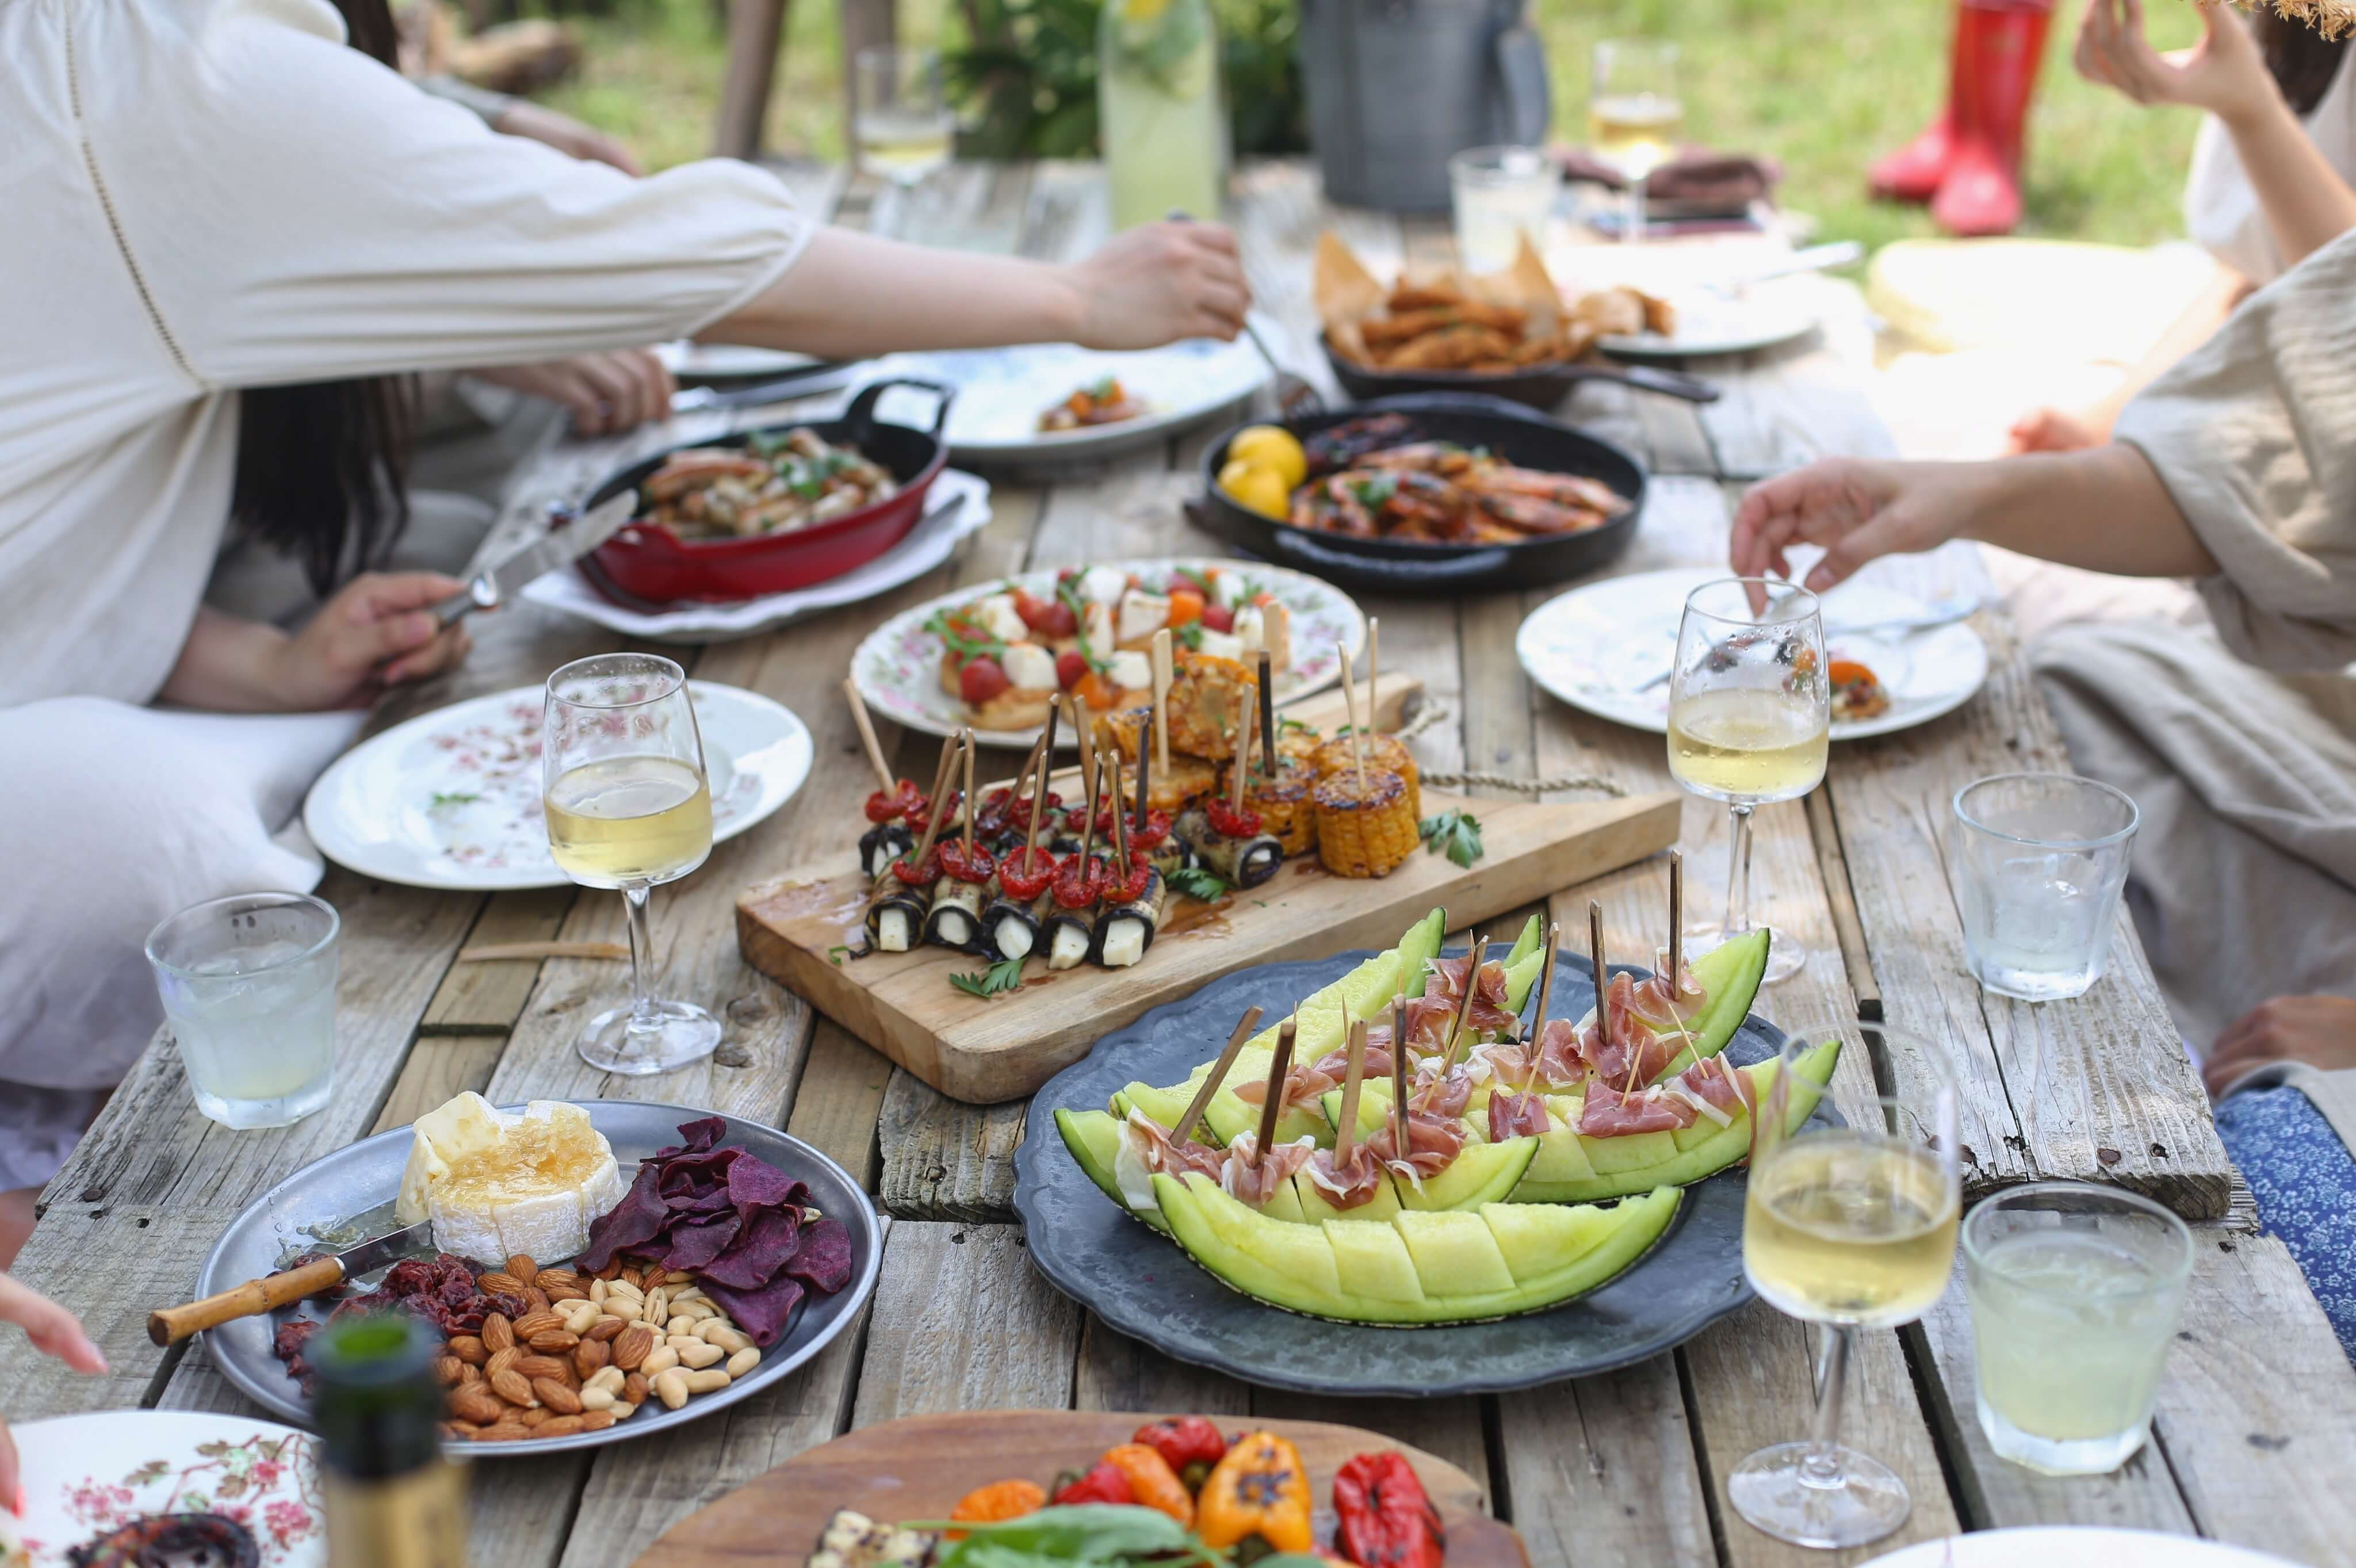 Food and drinks on a wood picnic table